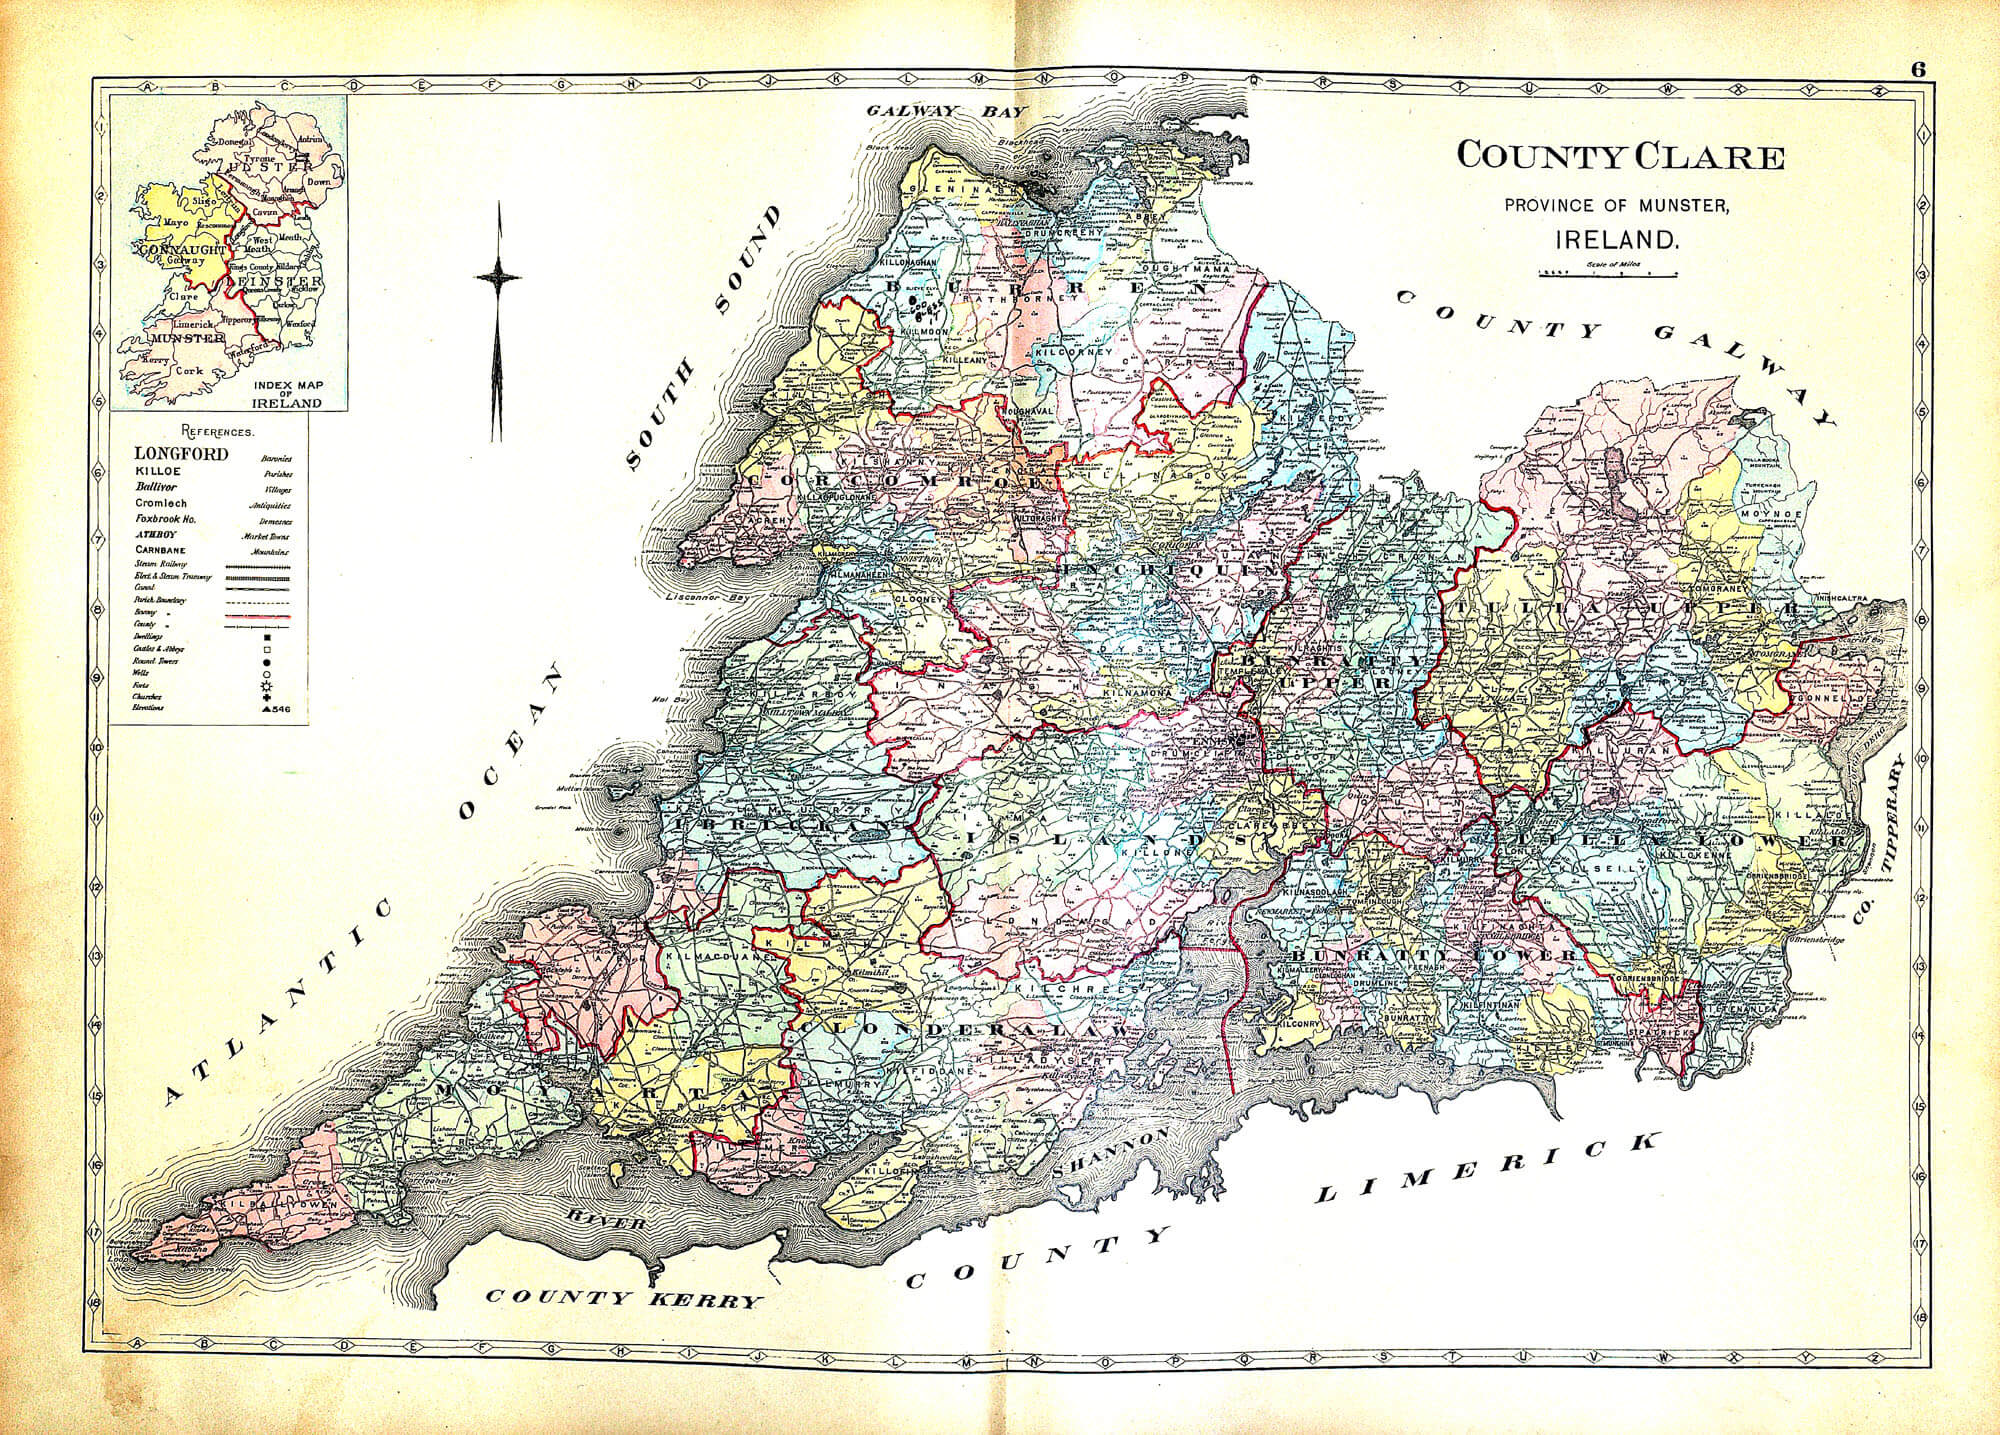 Blank Map Of Ireland Counties.Ireland And Counties Maps A 31 Richards 1901 L Brown Collection